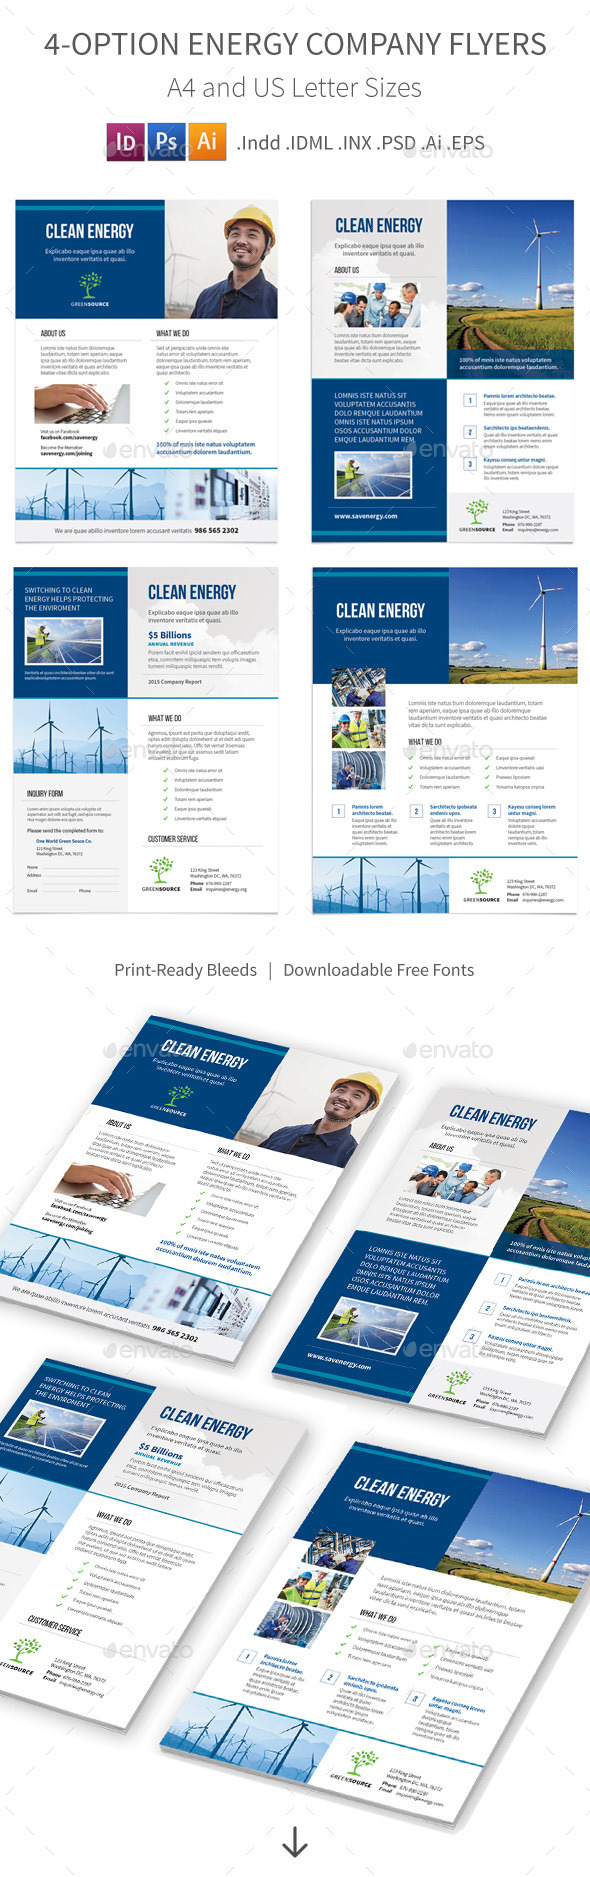 GraphicRiver Energy Company Flyers 4 Options 11610854